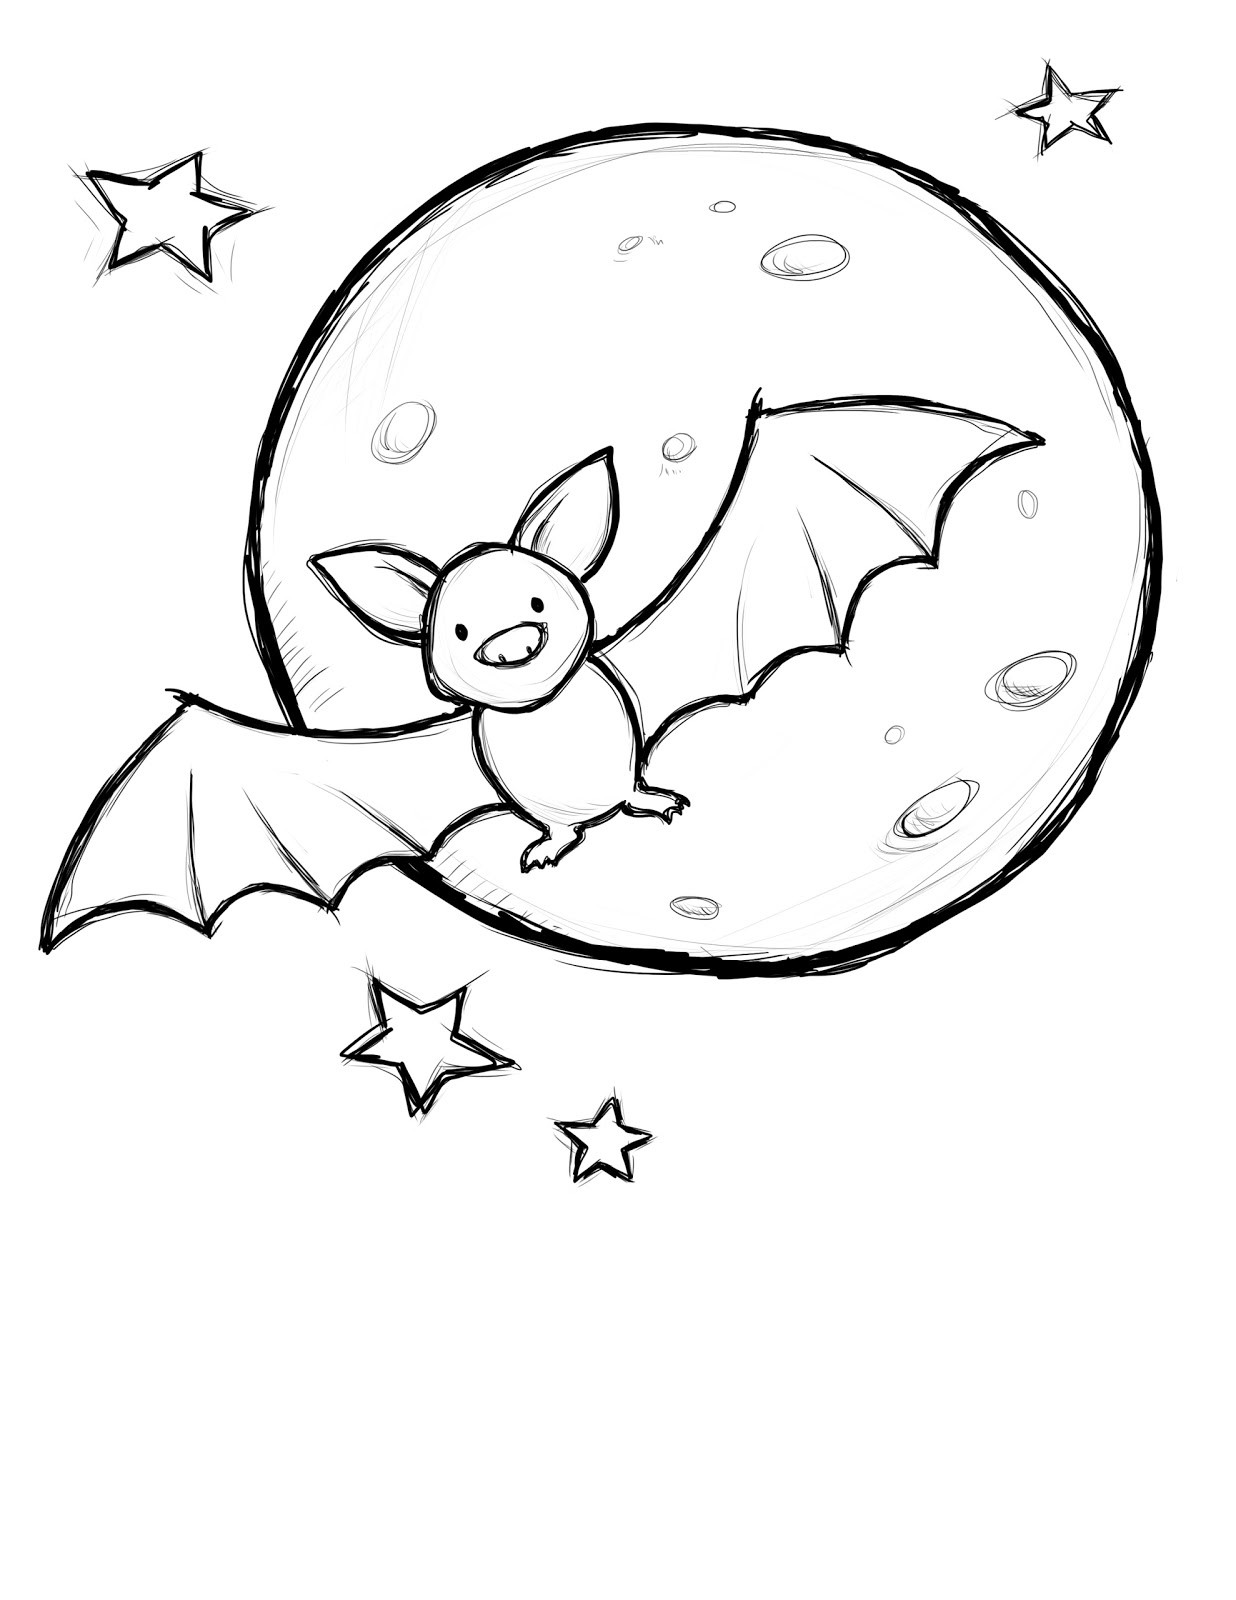 Cute Bat Coloring Pages  creatively christy Halloween Craft 4 Halloween Coloring